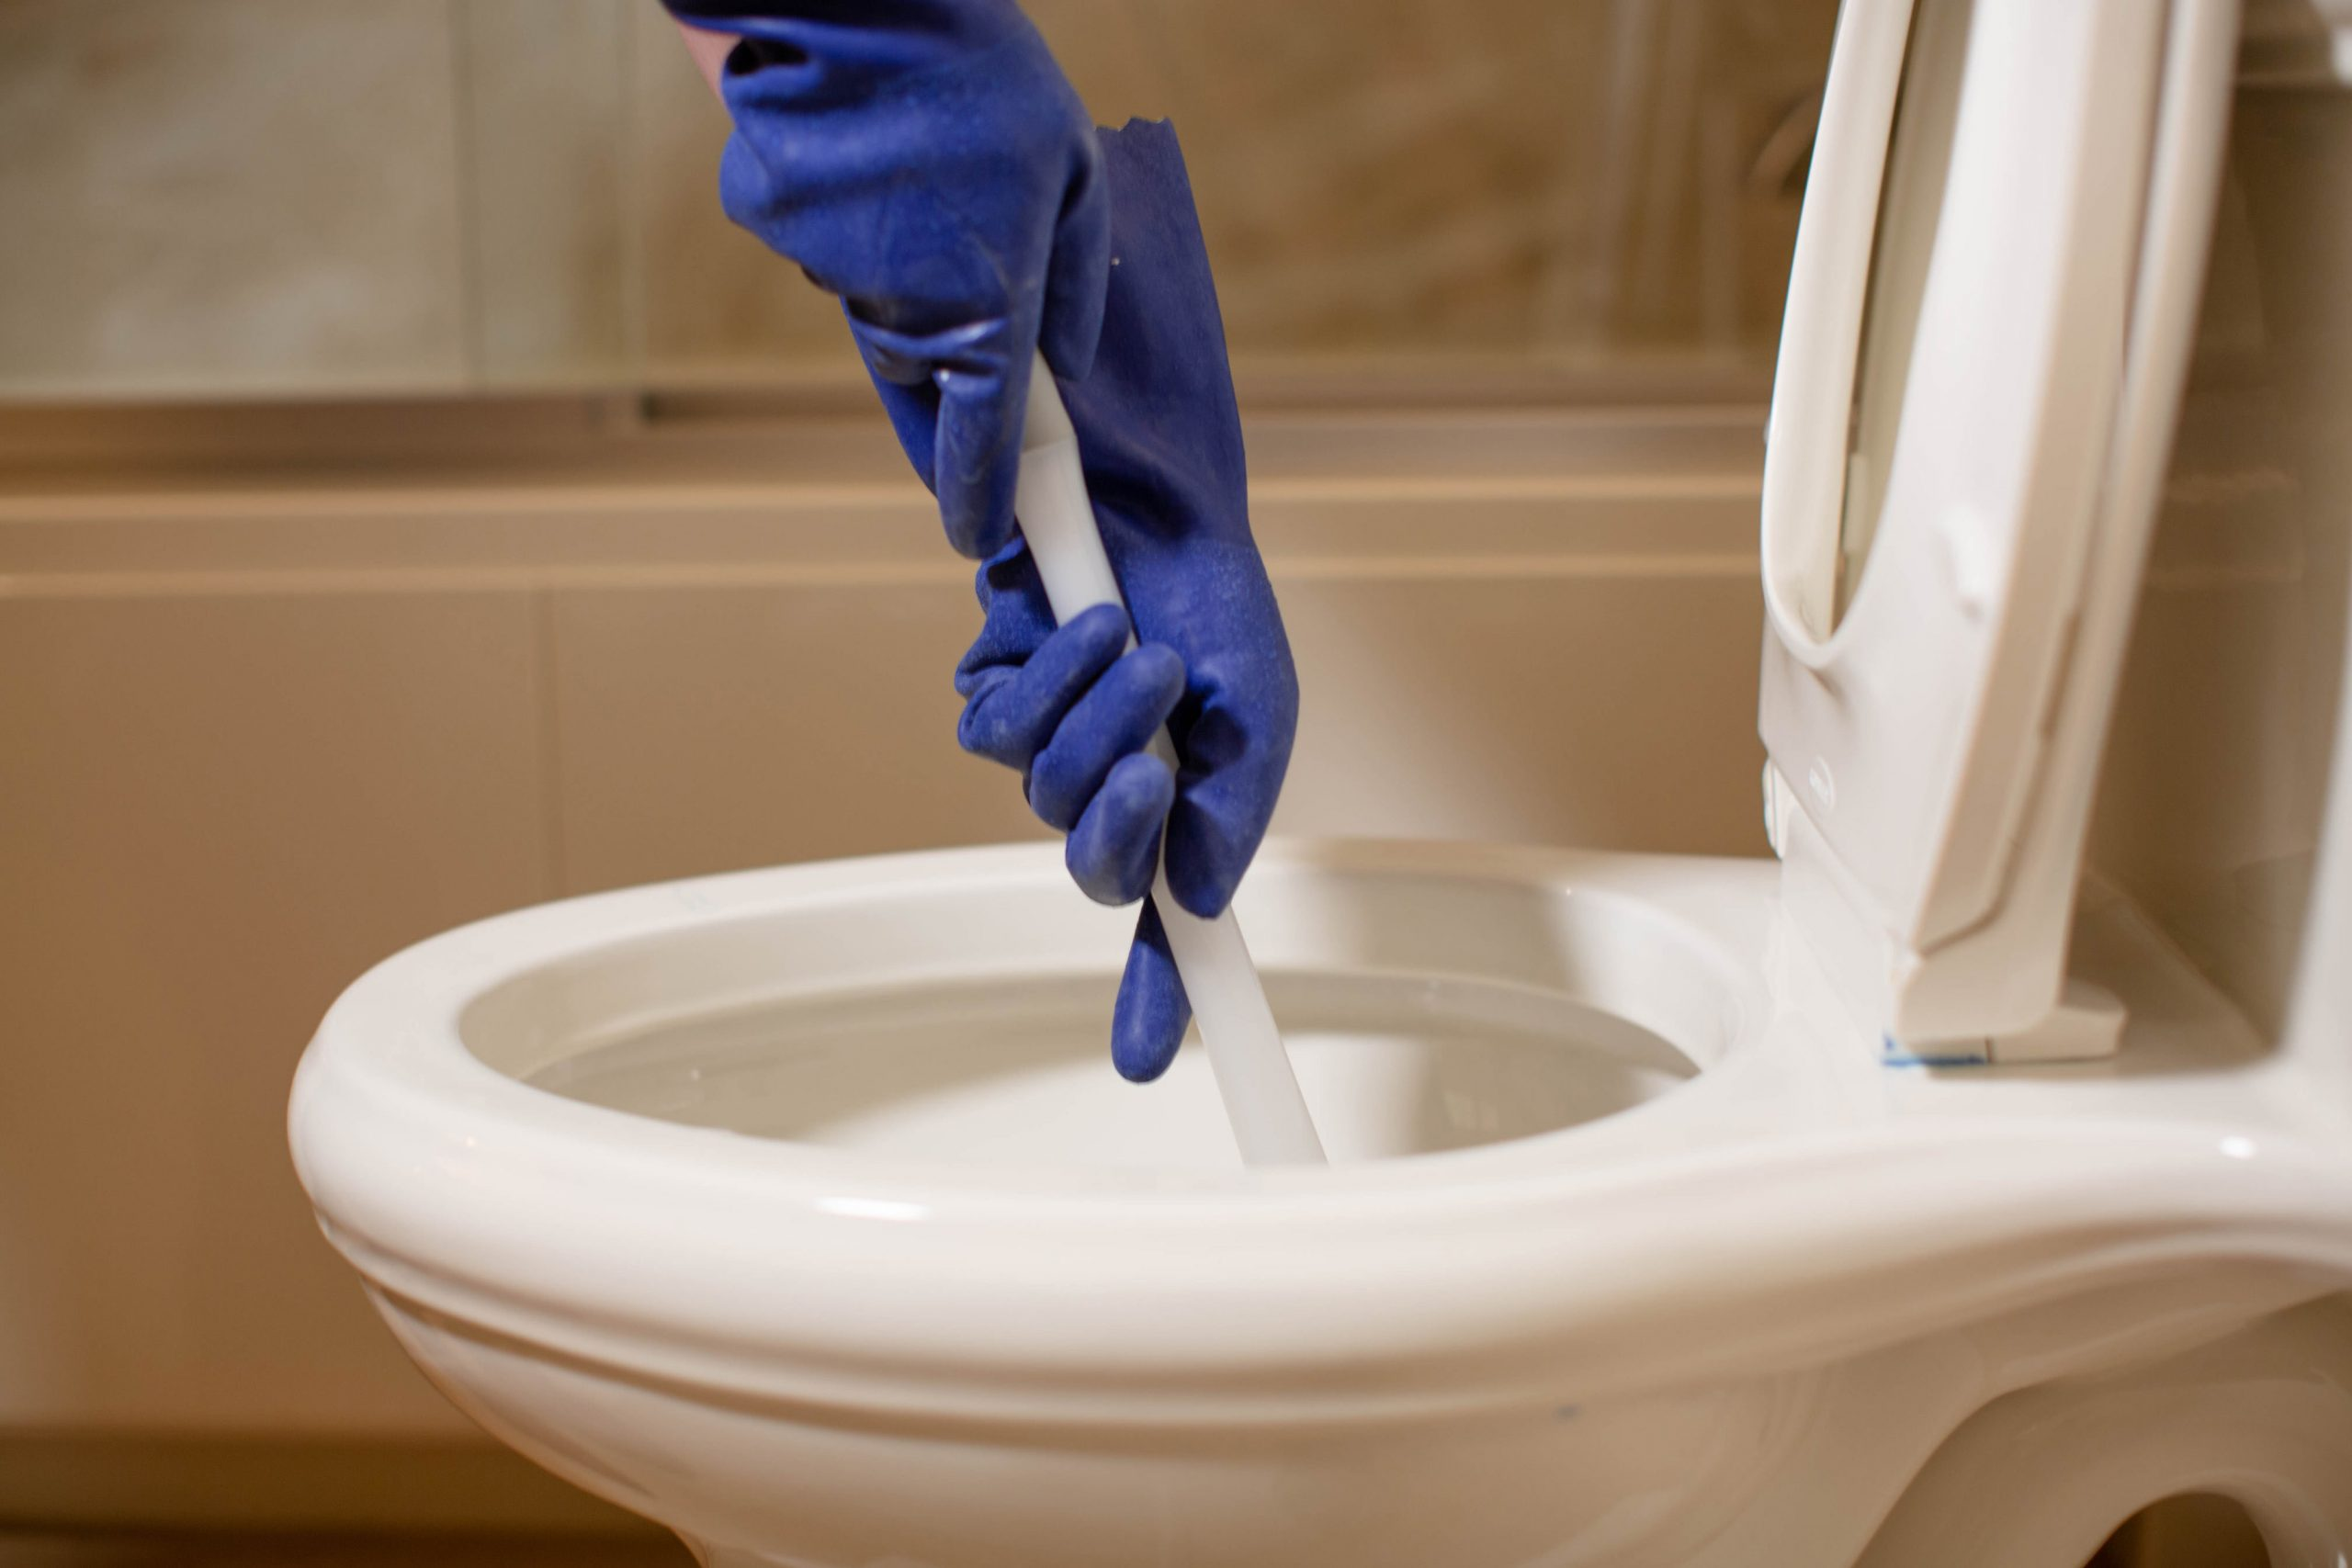 Clogged Toilet, Toilet Flanged or Drain